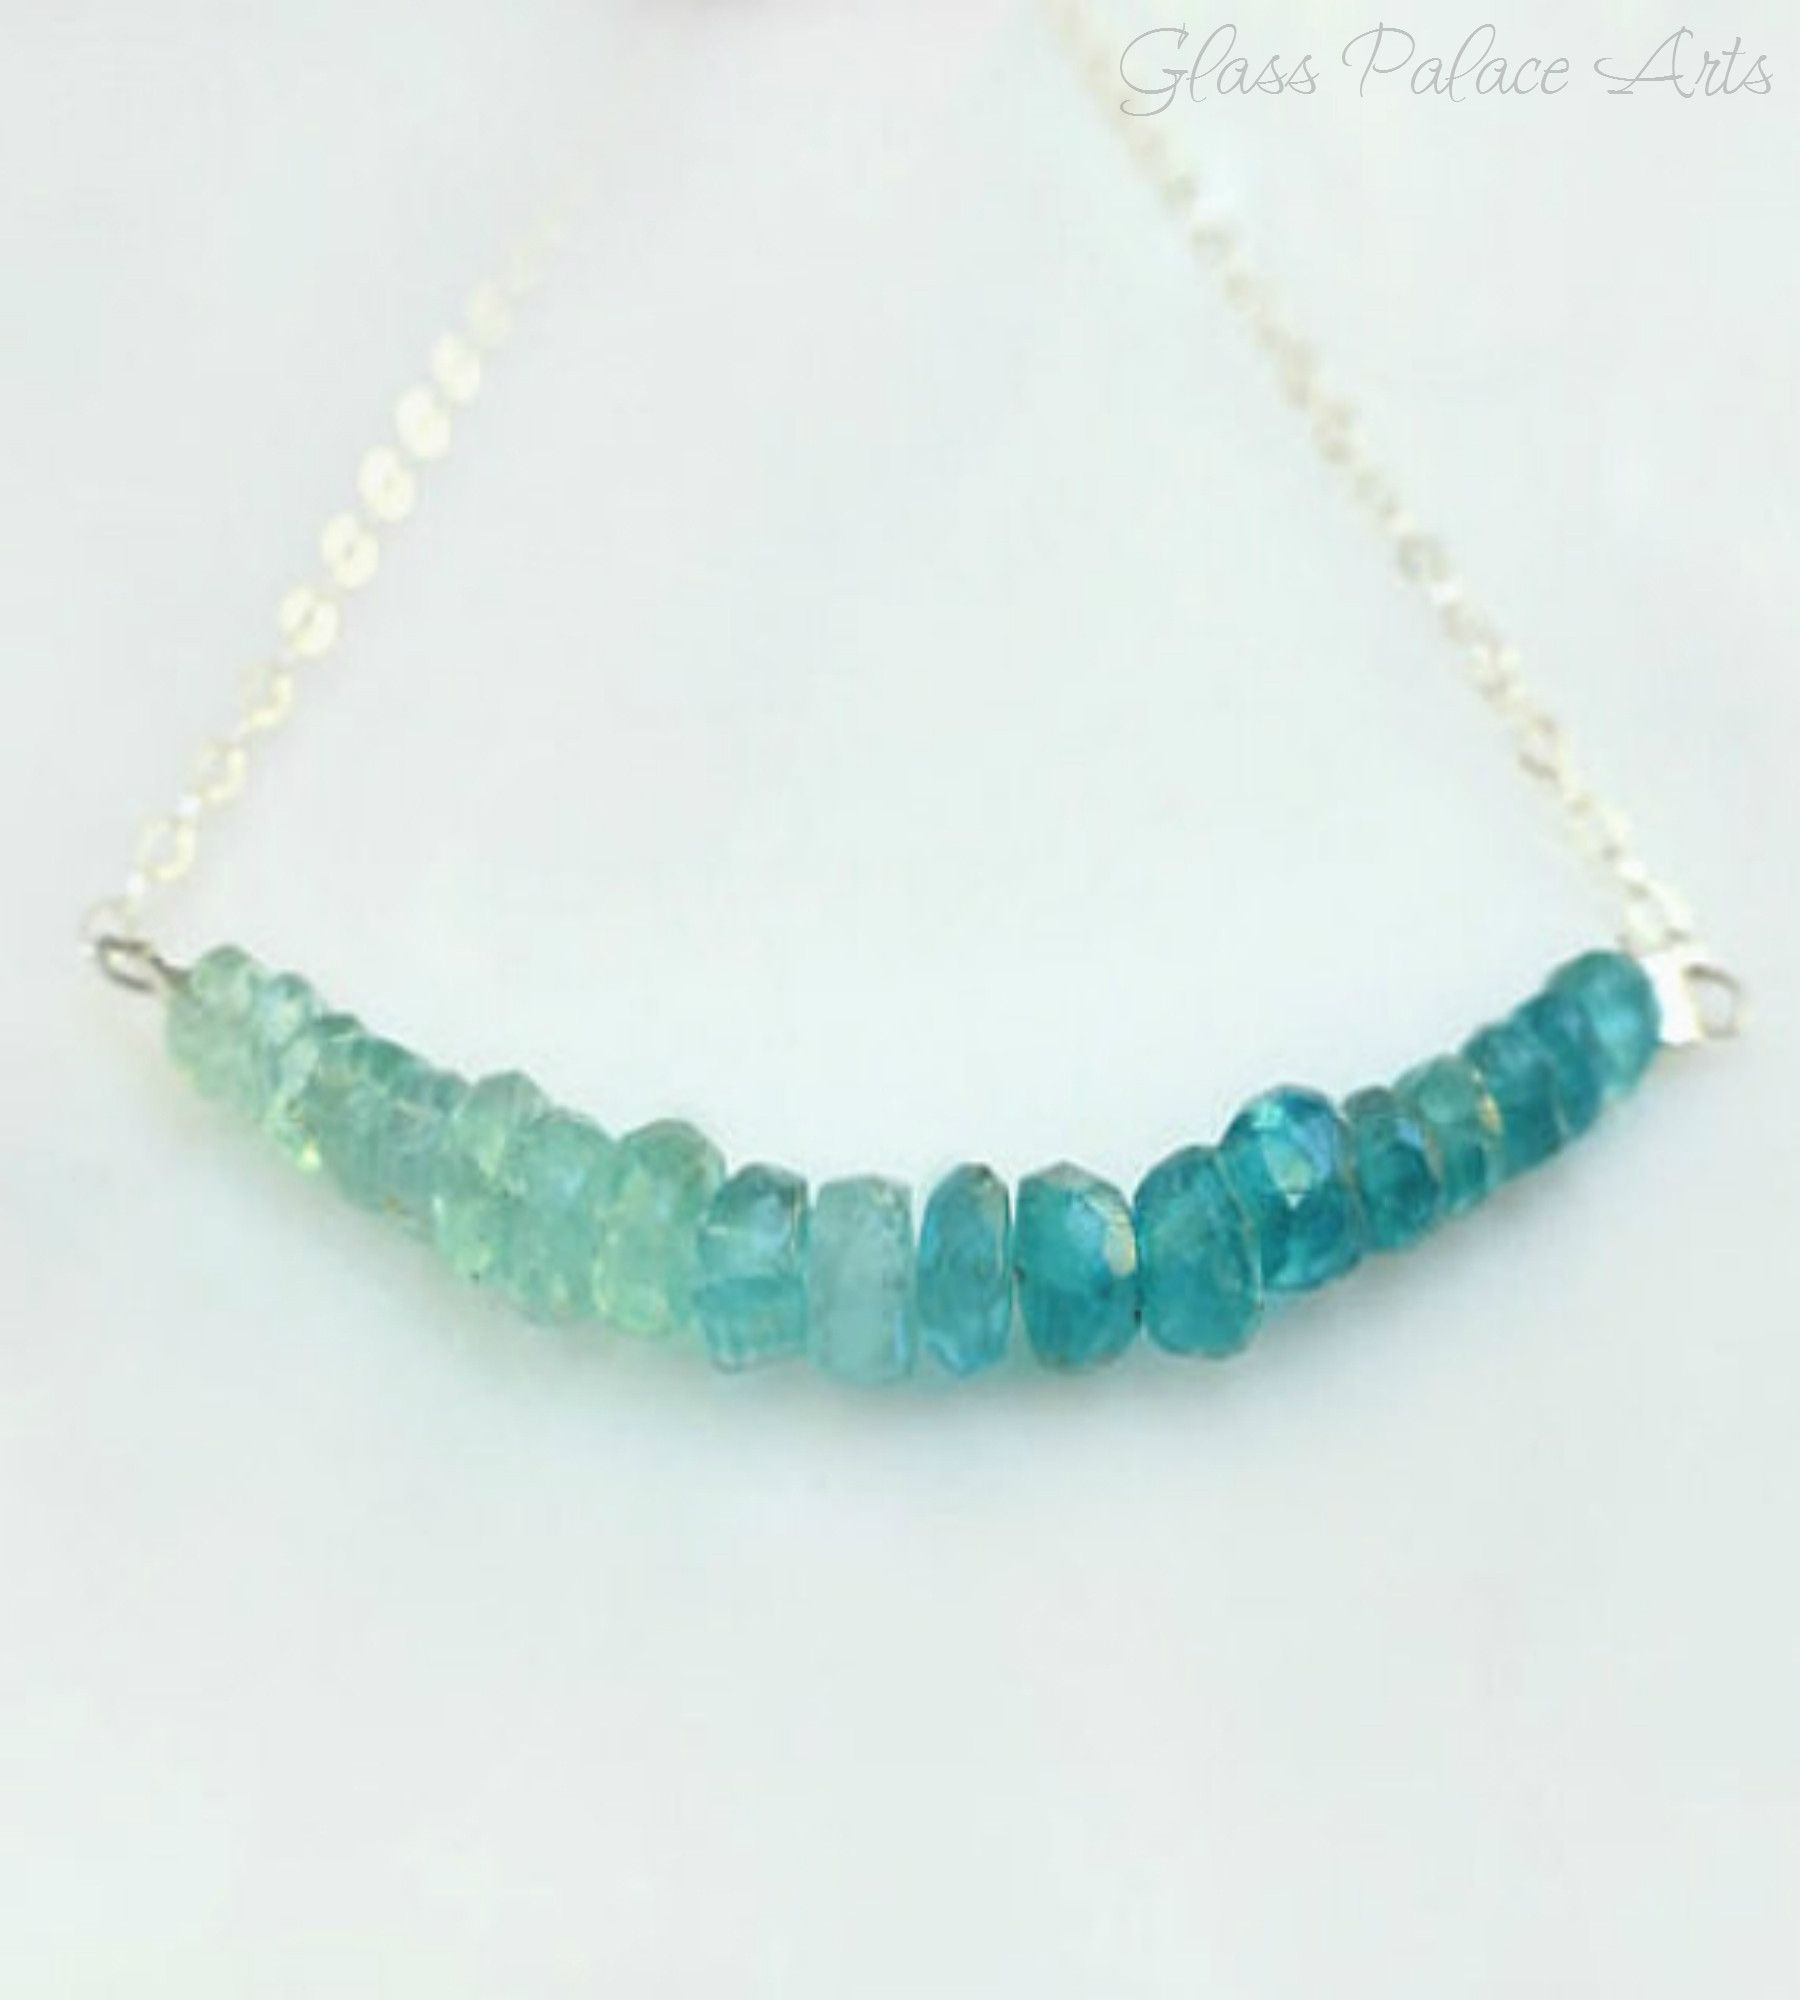 Blue Green Apatite Necklace - With Ombre Design | Strand necklace ...